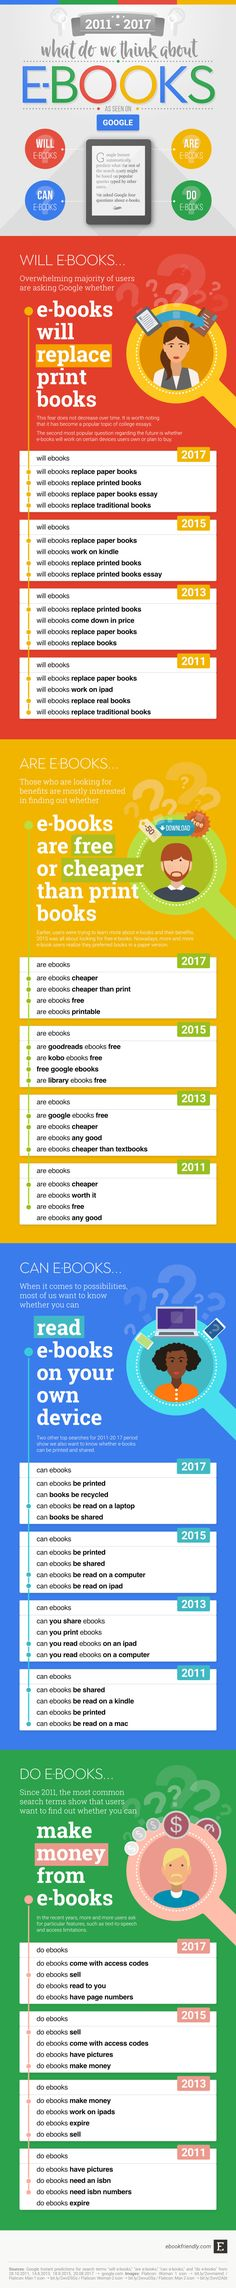 Google web search can bring interesting information about what internet users think about electronic books.